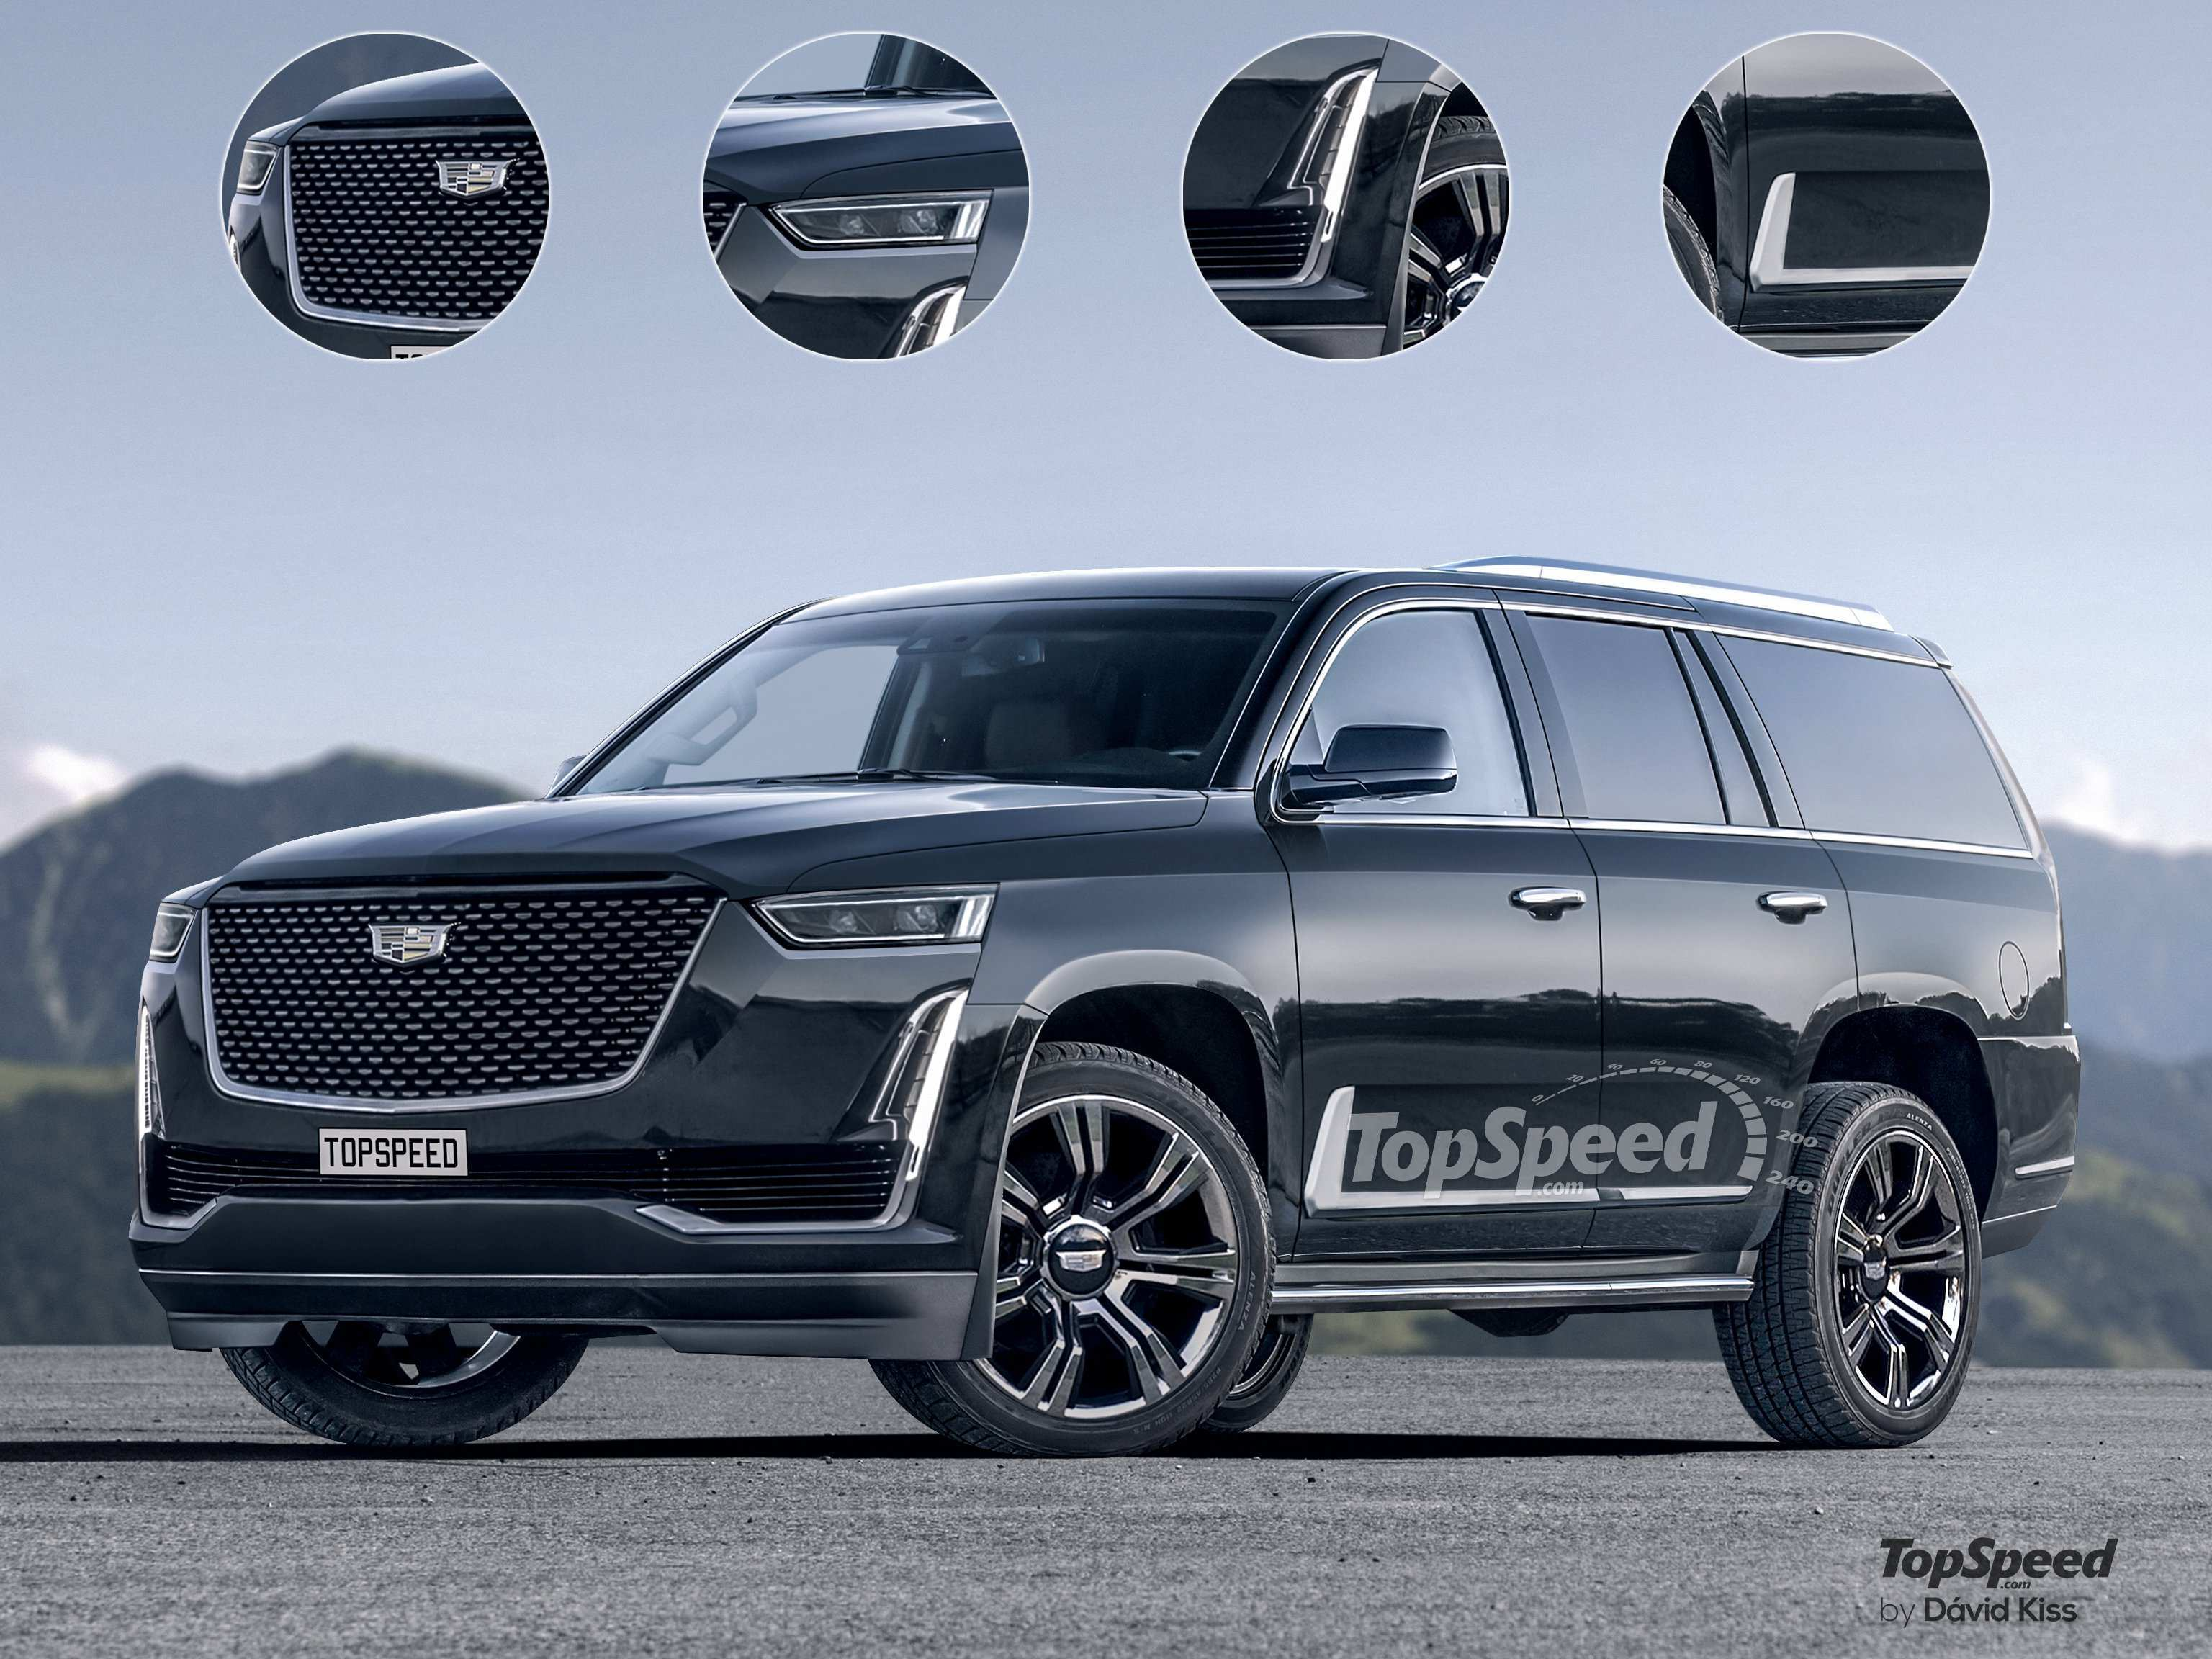 51 New 2020 Cadillac Ext Spesification by 2020 Cadillac Ext